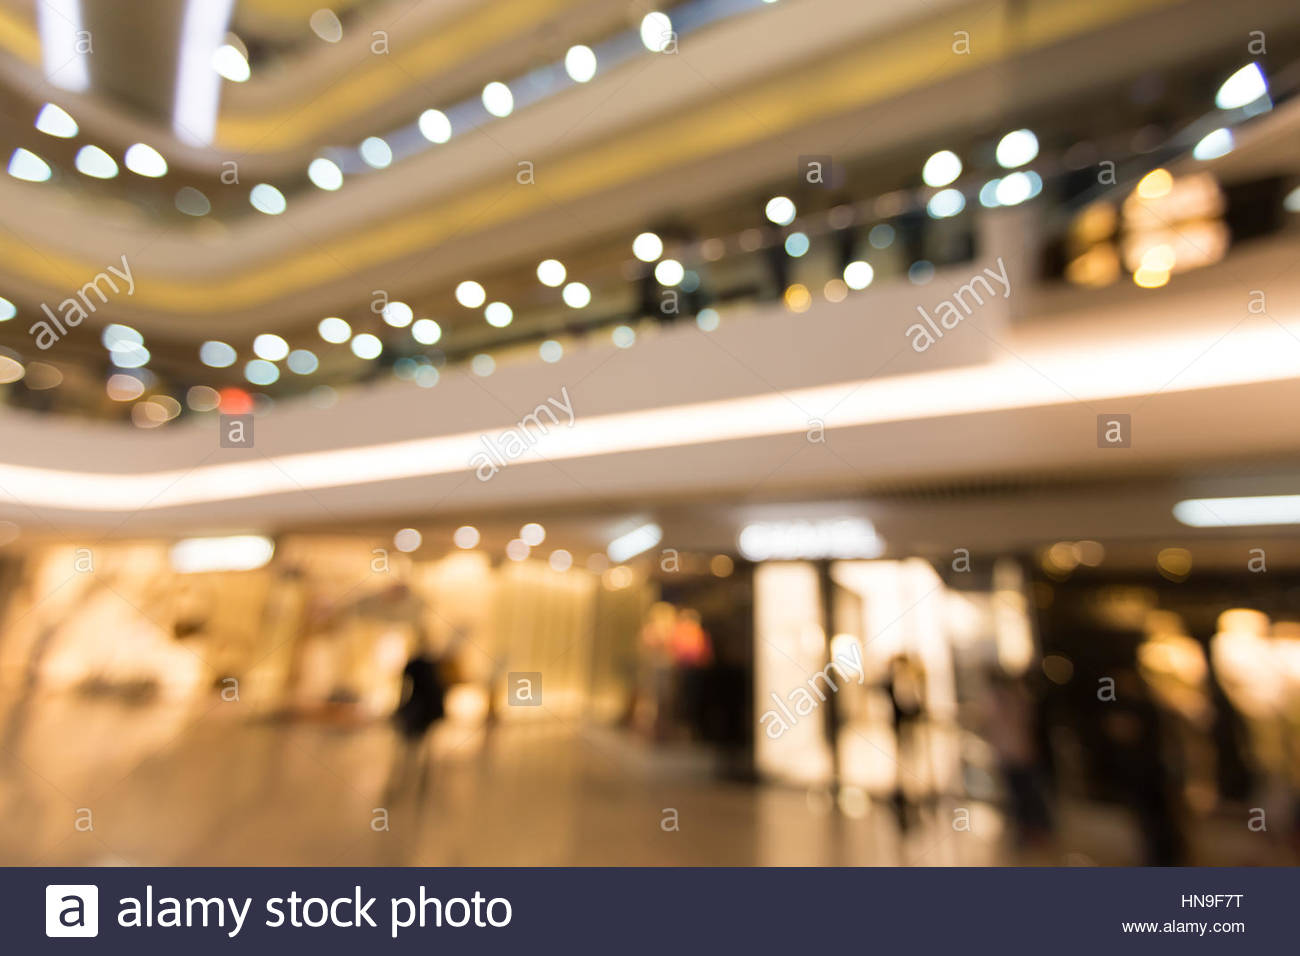 Blurred Shopping mall backgrounds Stock Photo 133589900   Alamy 1300x956